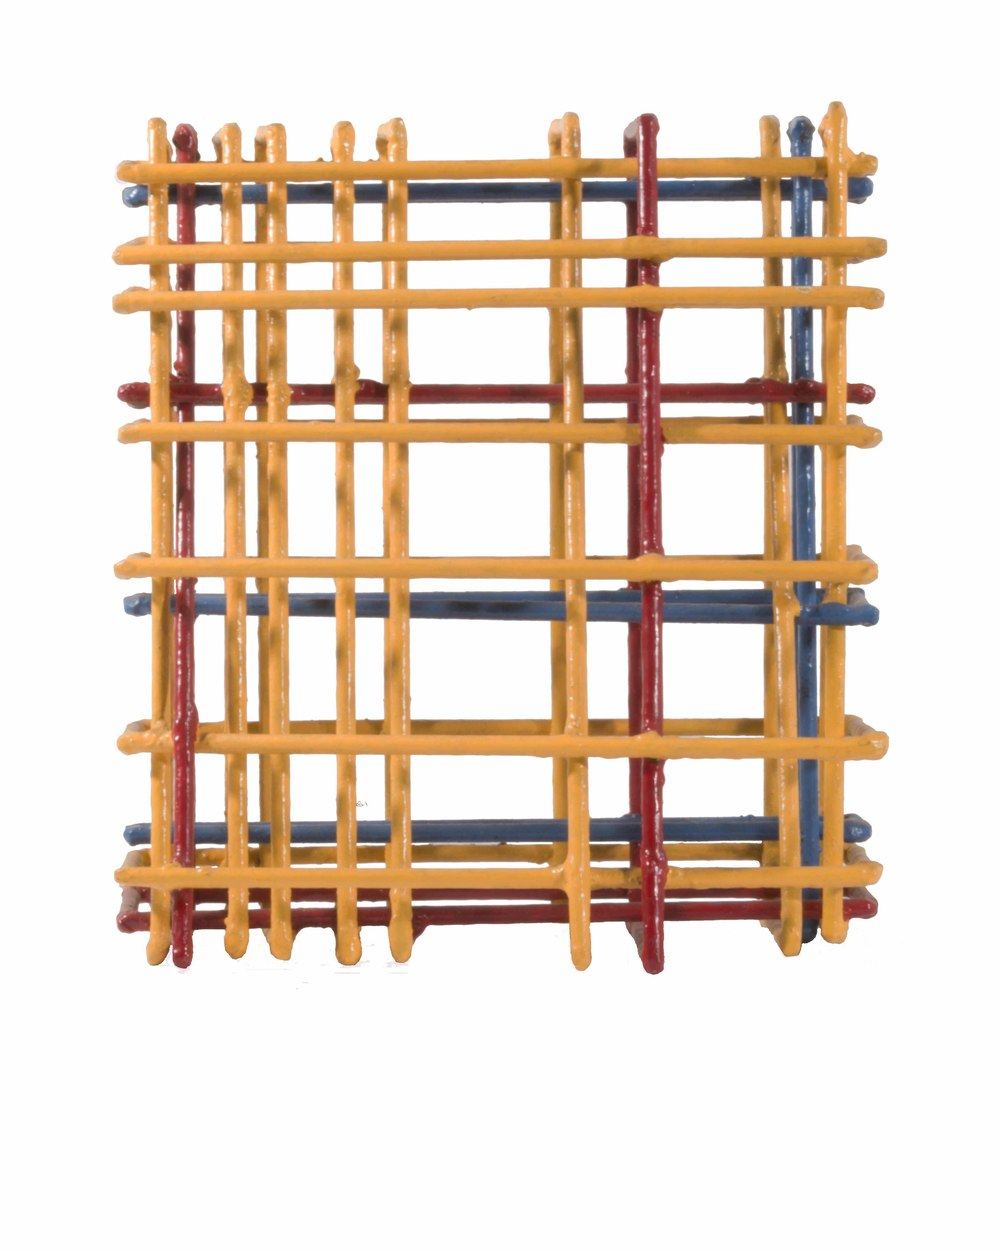 Mondrian Construction 5B, 1995-6